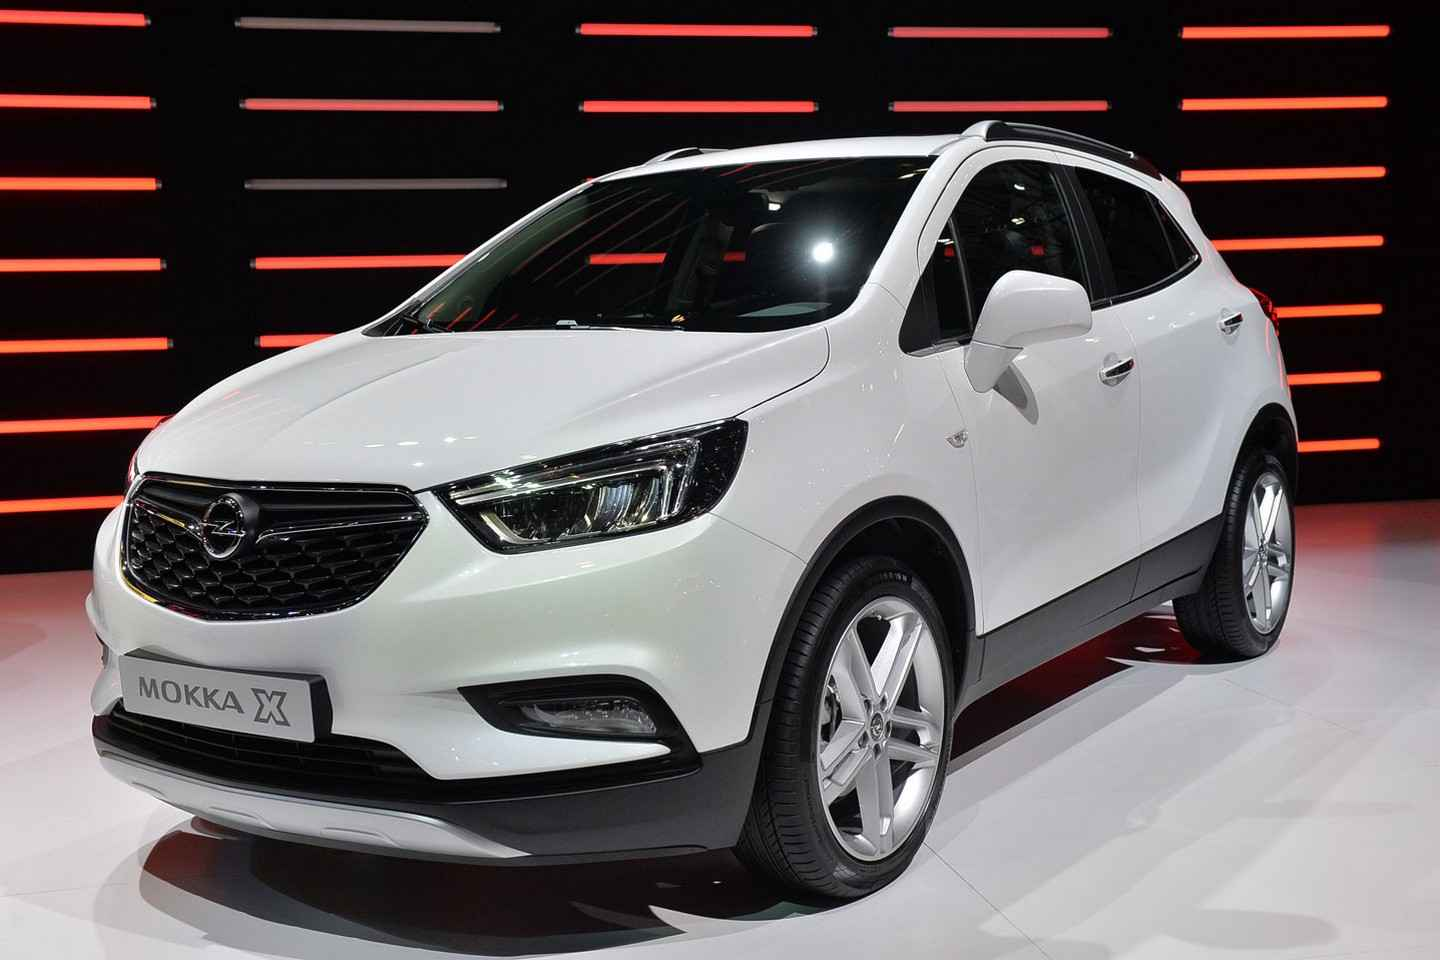 2016 opel mokka x tasar m uygun ta t. Black Bedroom Furniture Sets. Home Design Ideas